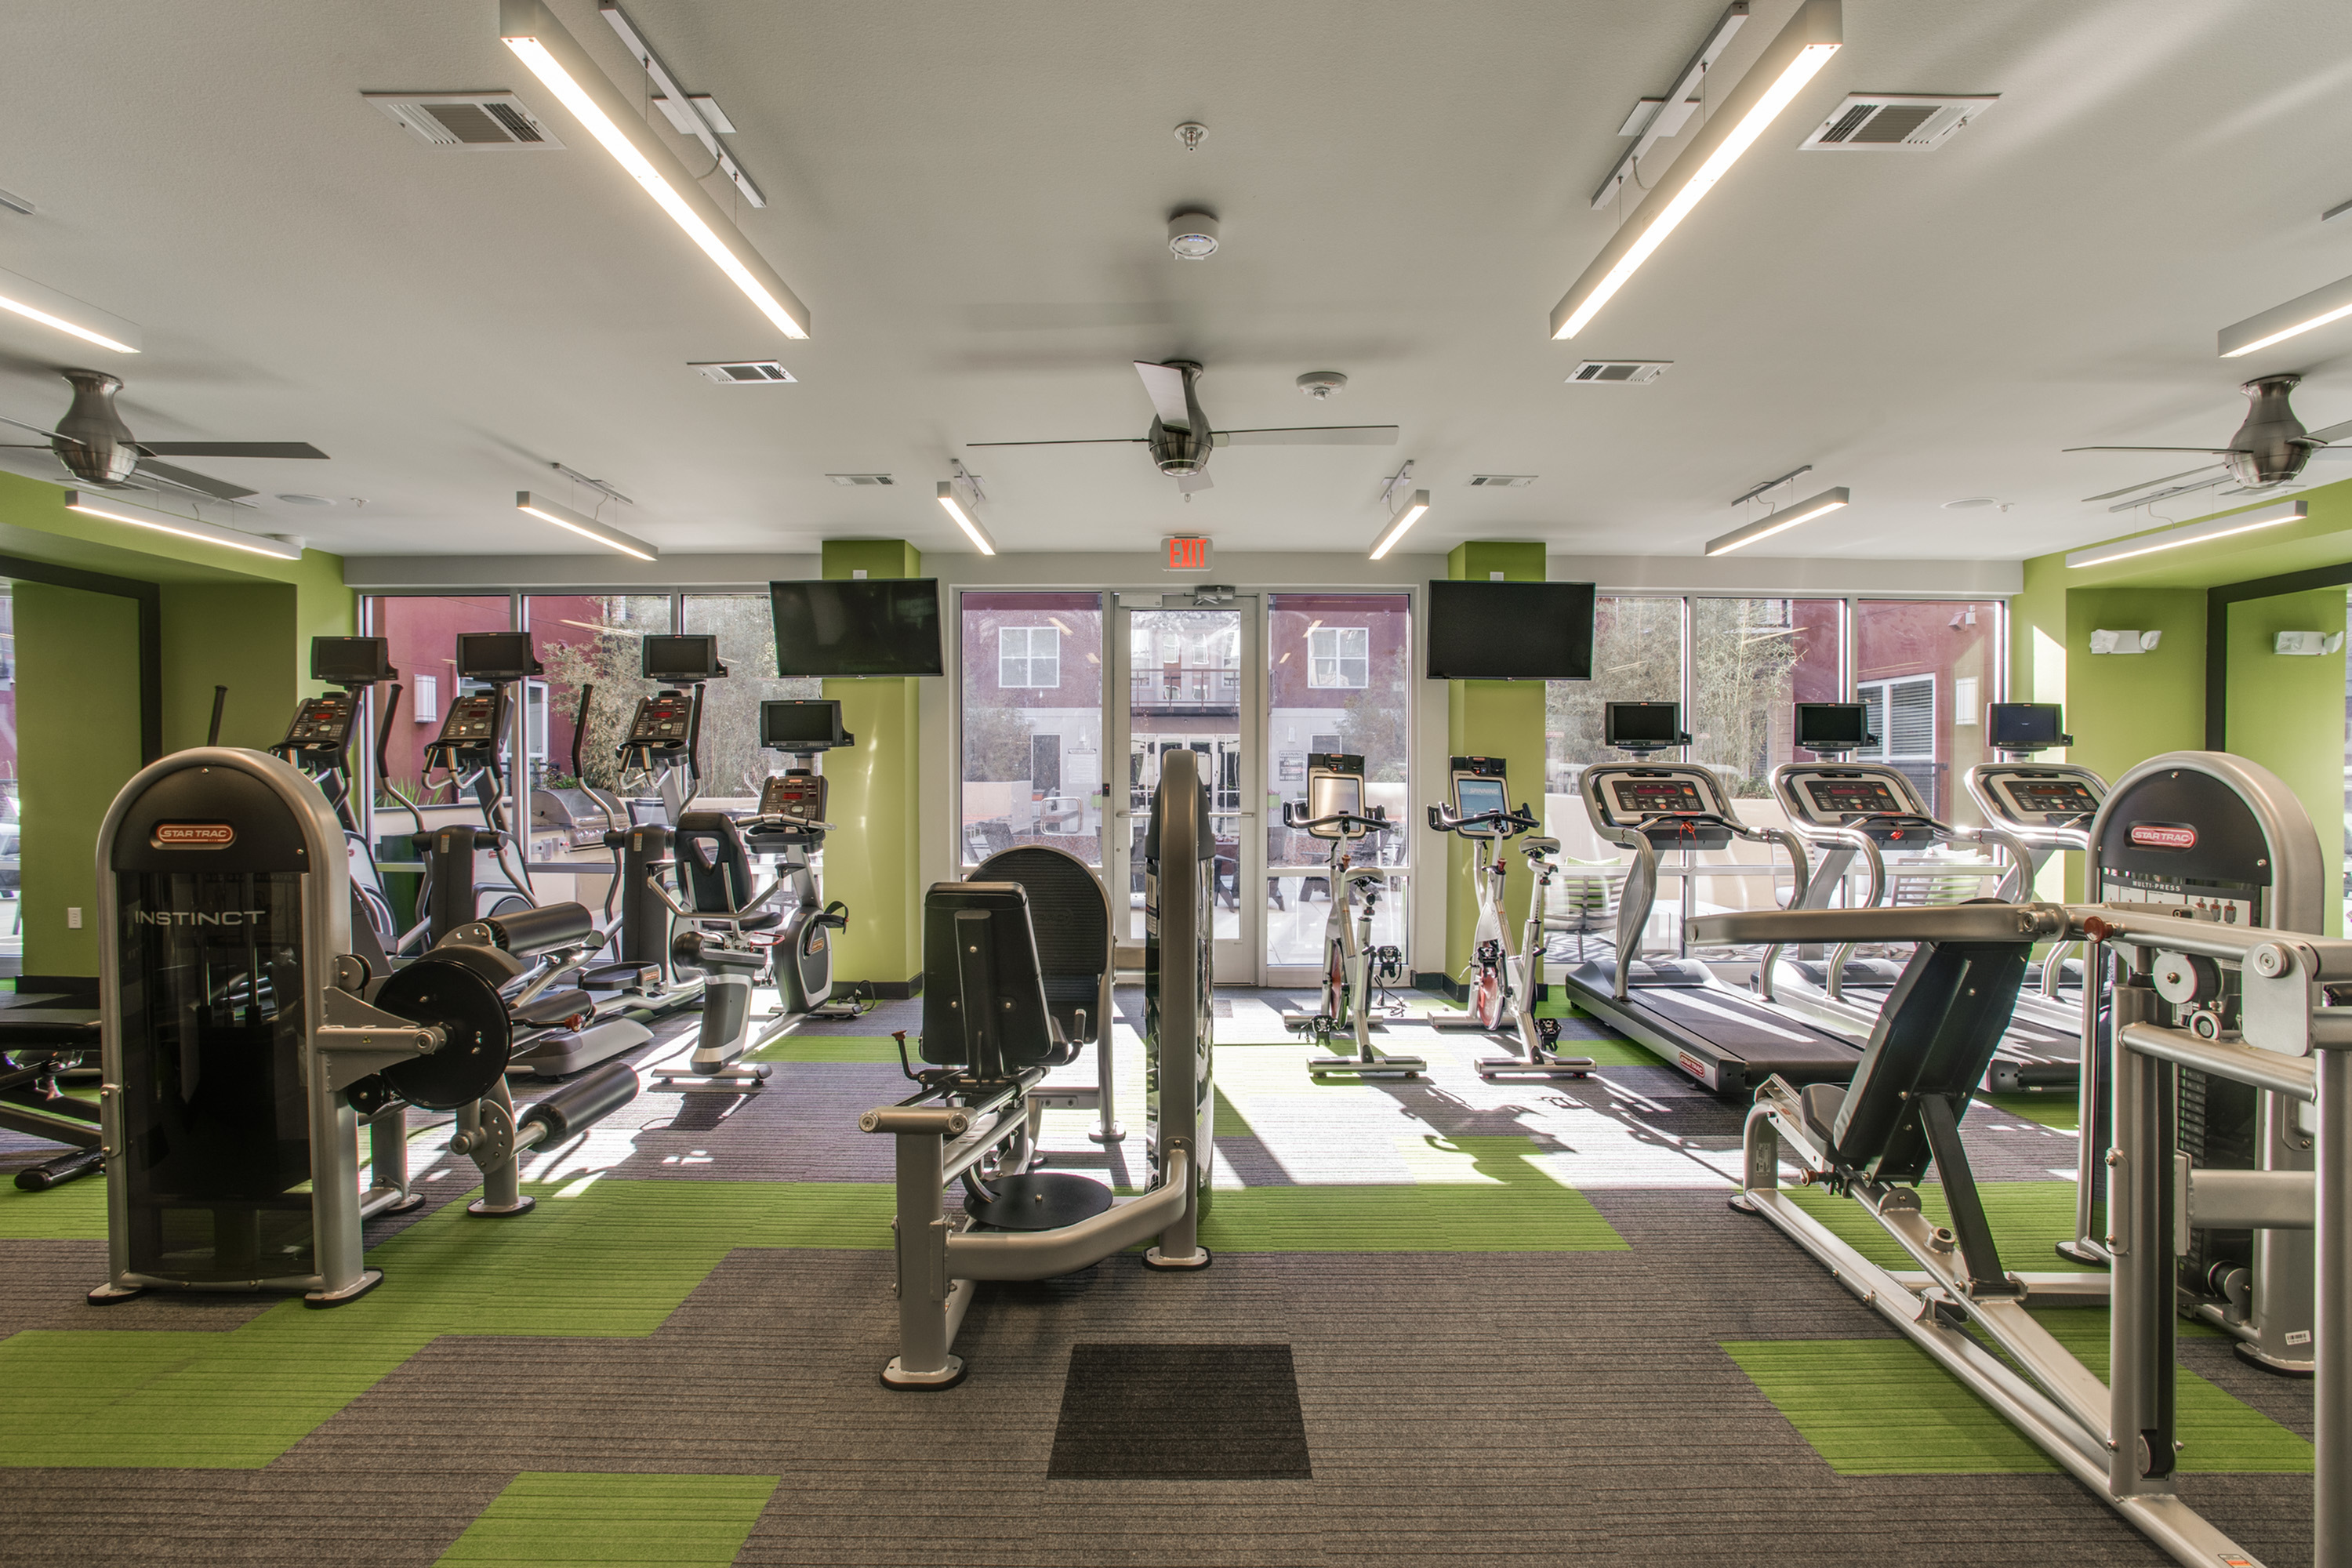 View of Fitness Center, Showing Cardio Machines, Cable Machines, and TVs at Routh Street Flats Apartments